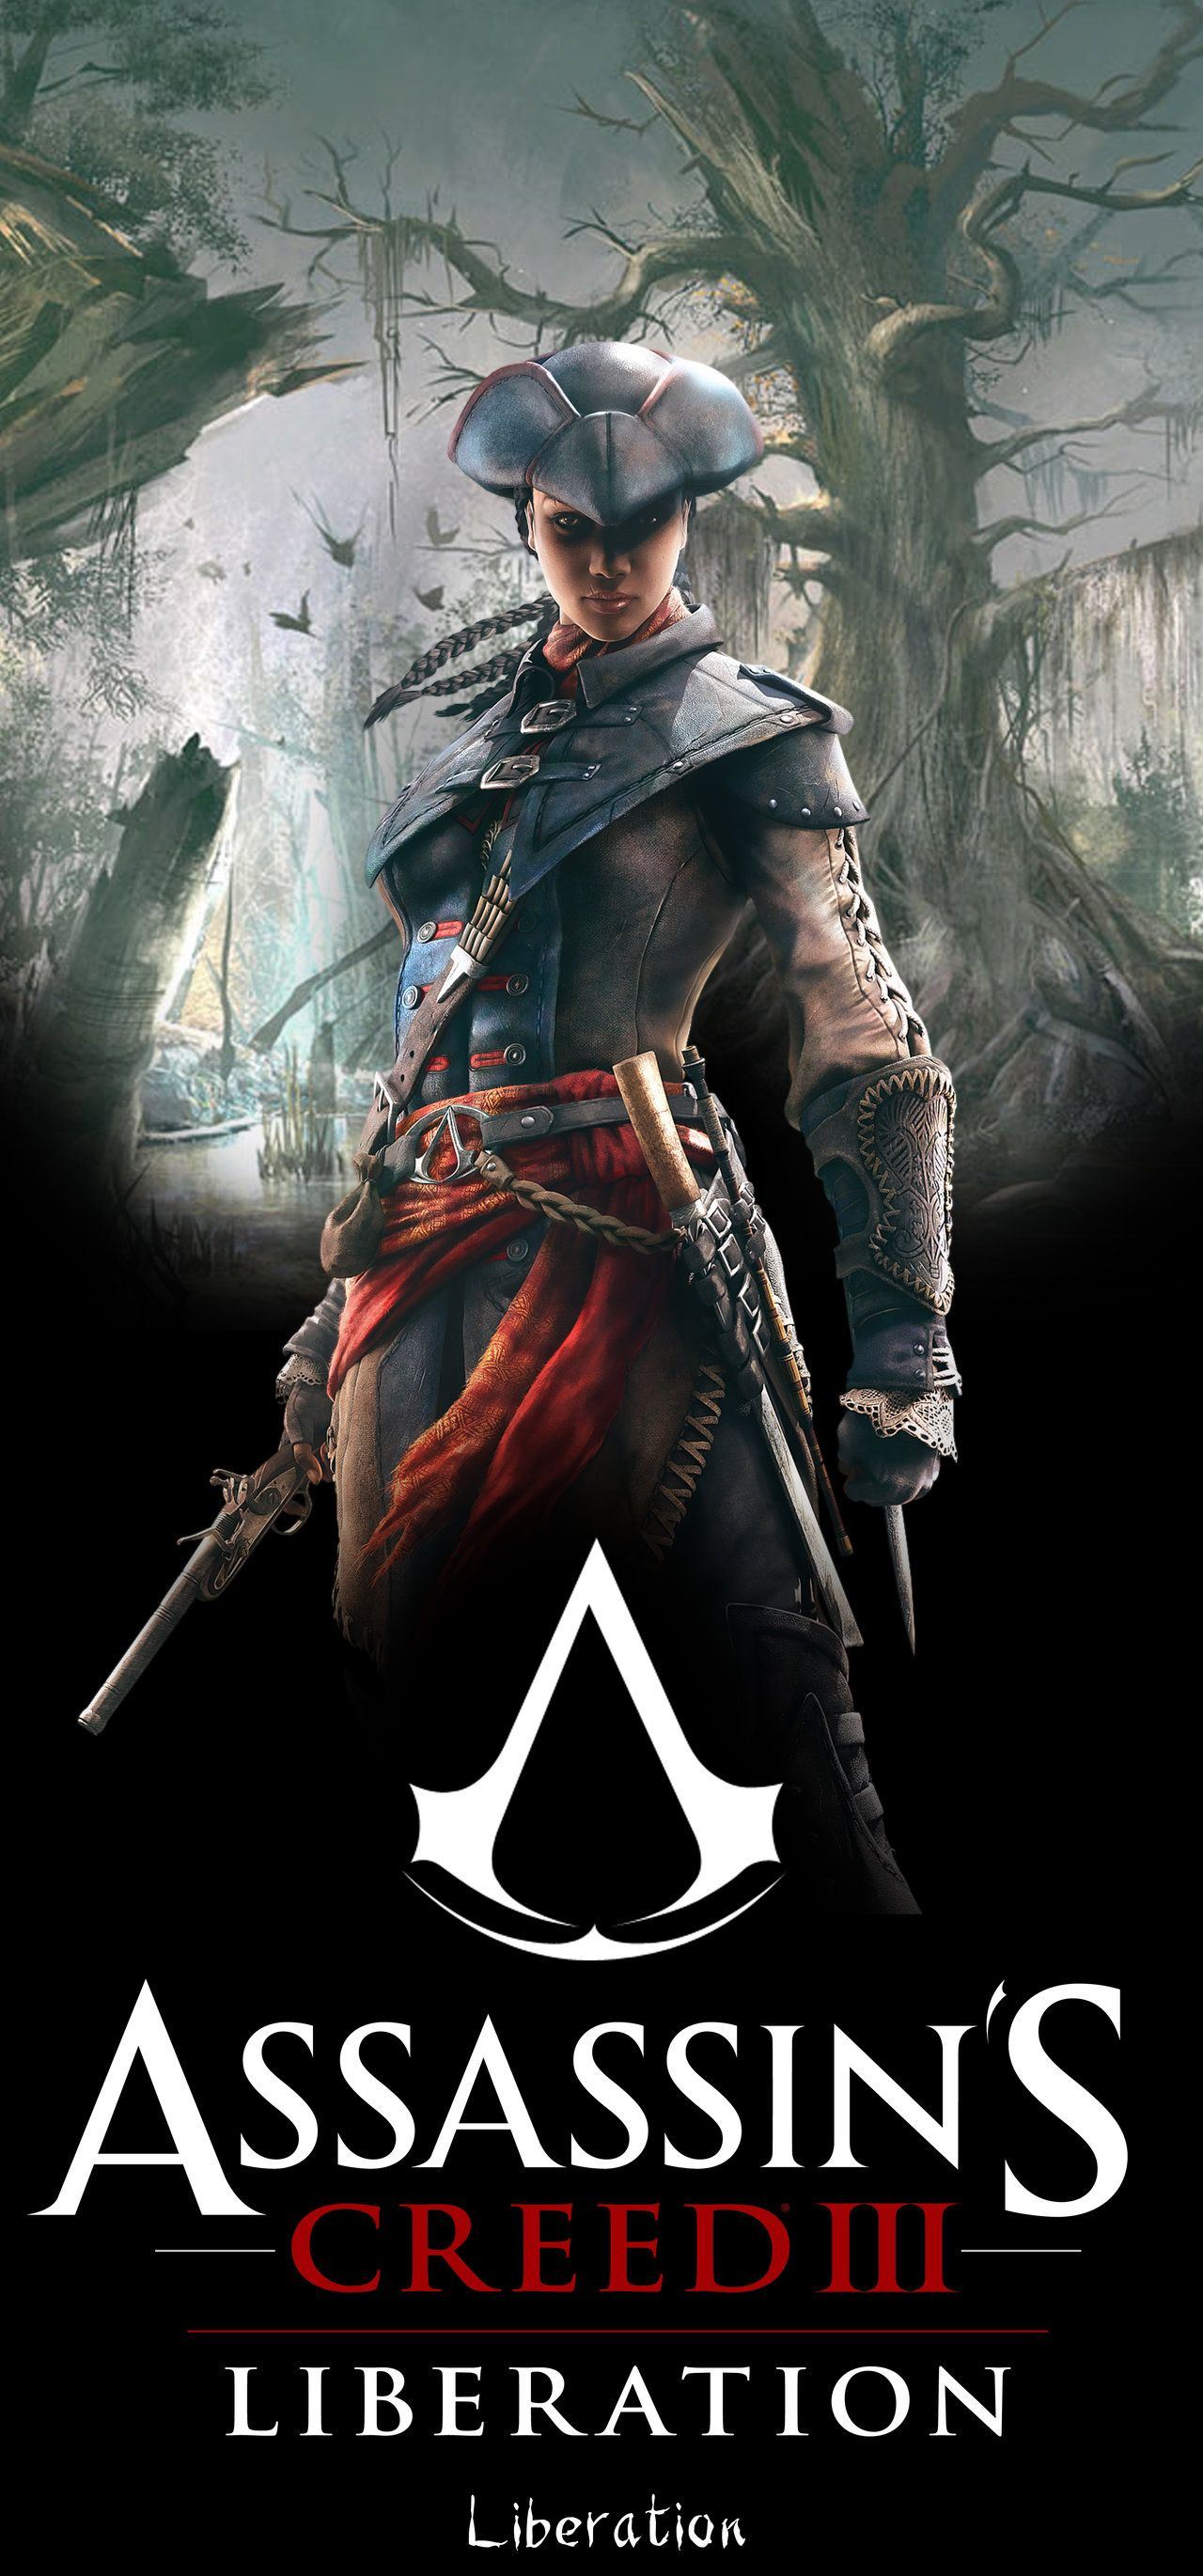 Assassin S Creed Poster Large Aveline By Ven93 Deviantart Com On Deviantart Arte Fantasia Anime Desenho Tattoo